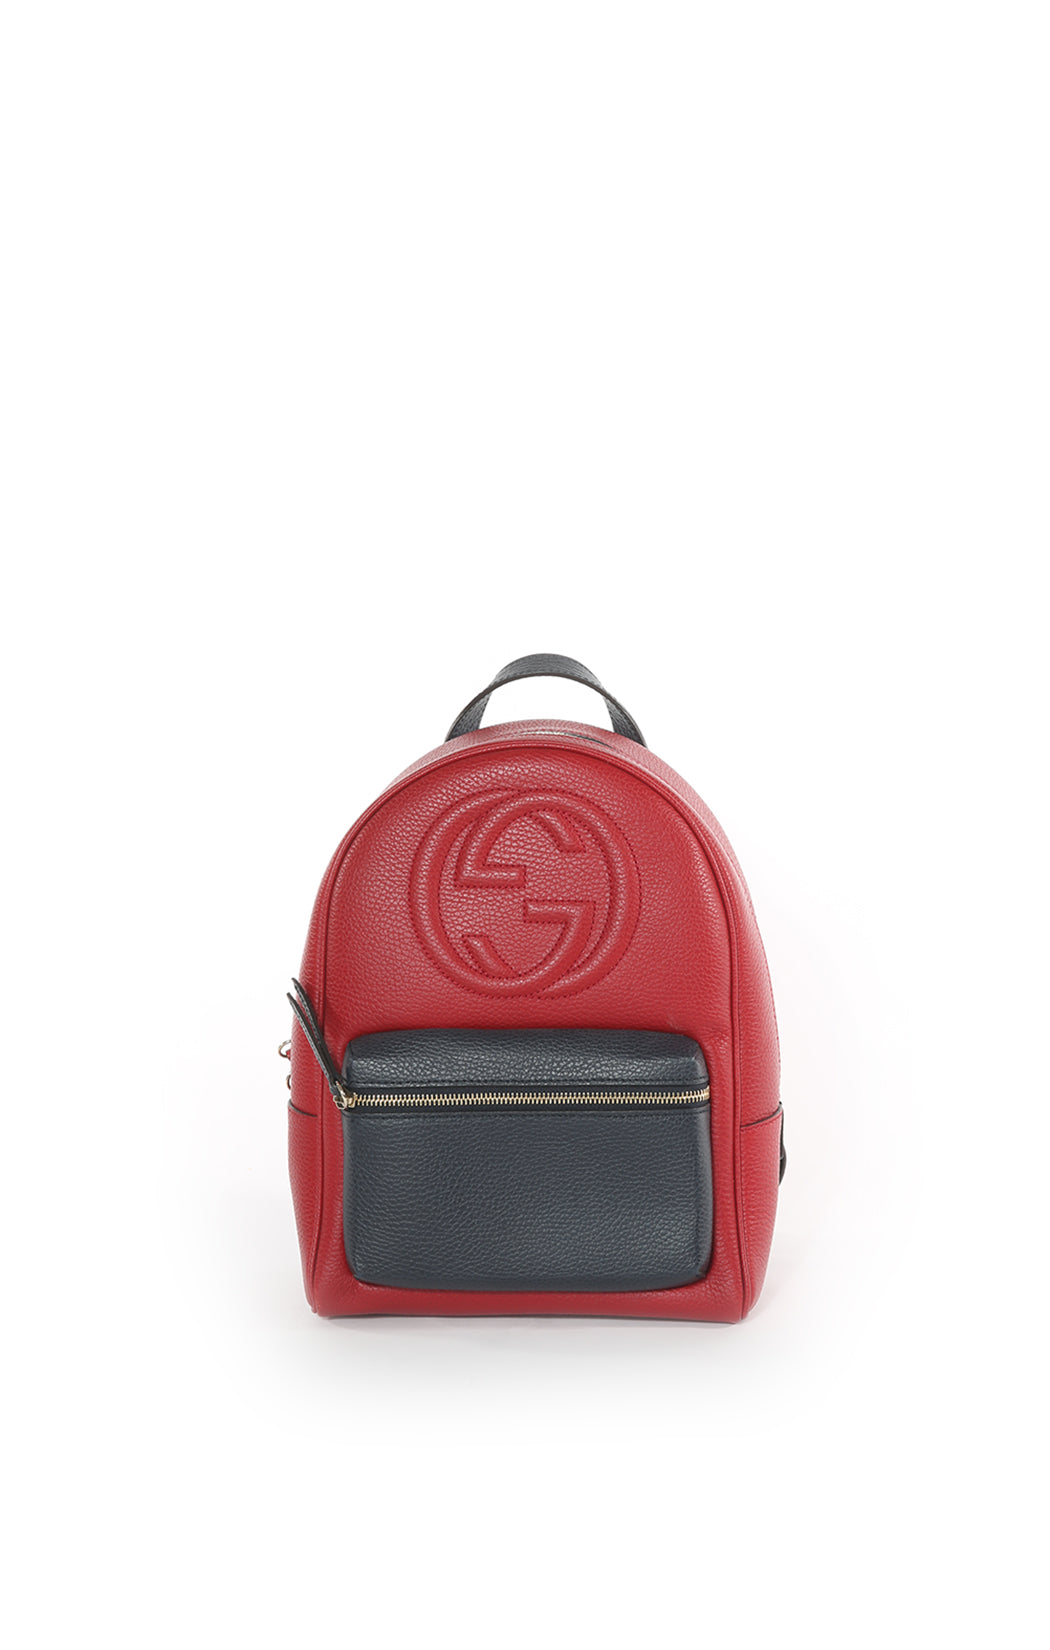 Front view of GUCCI Backpack Size: 9 in x 12 in x 4 in